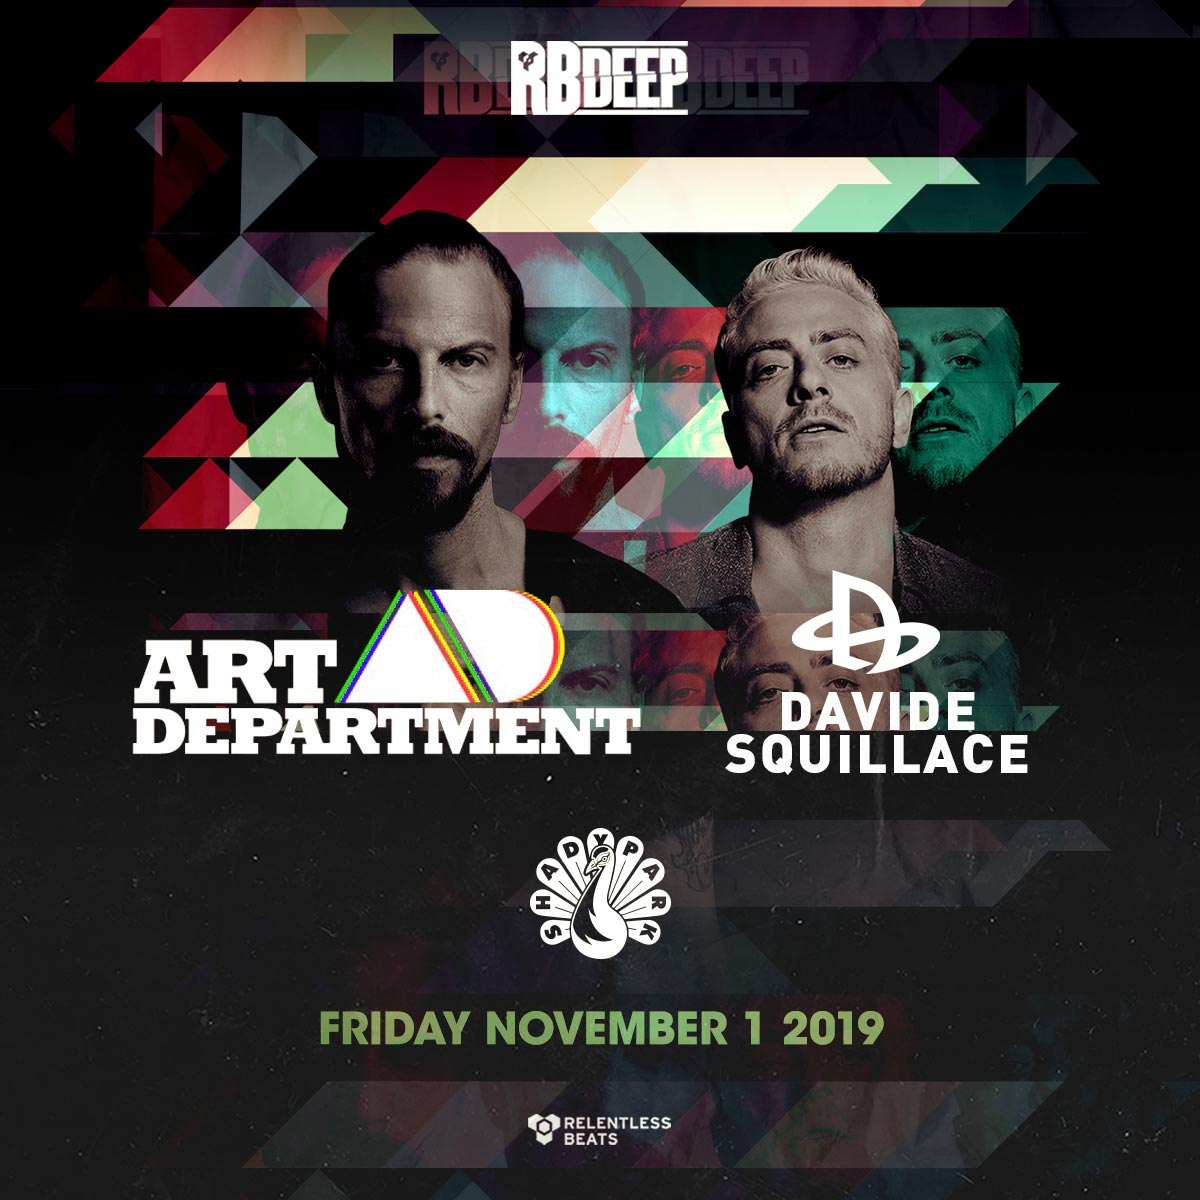 Flyer for Art Department + Davide Squillace